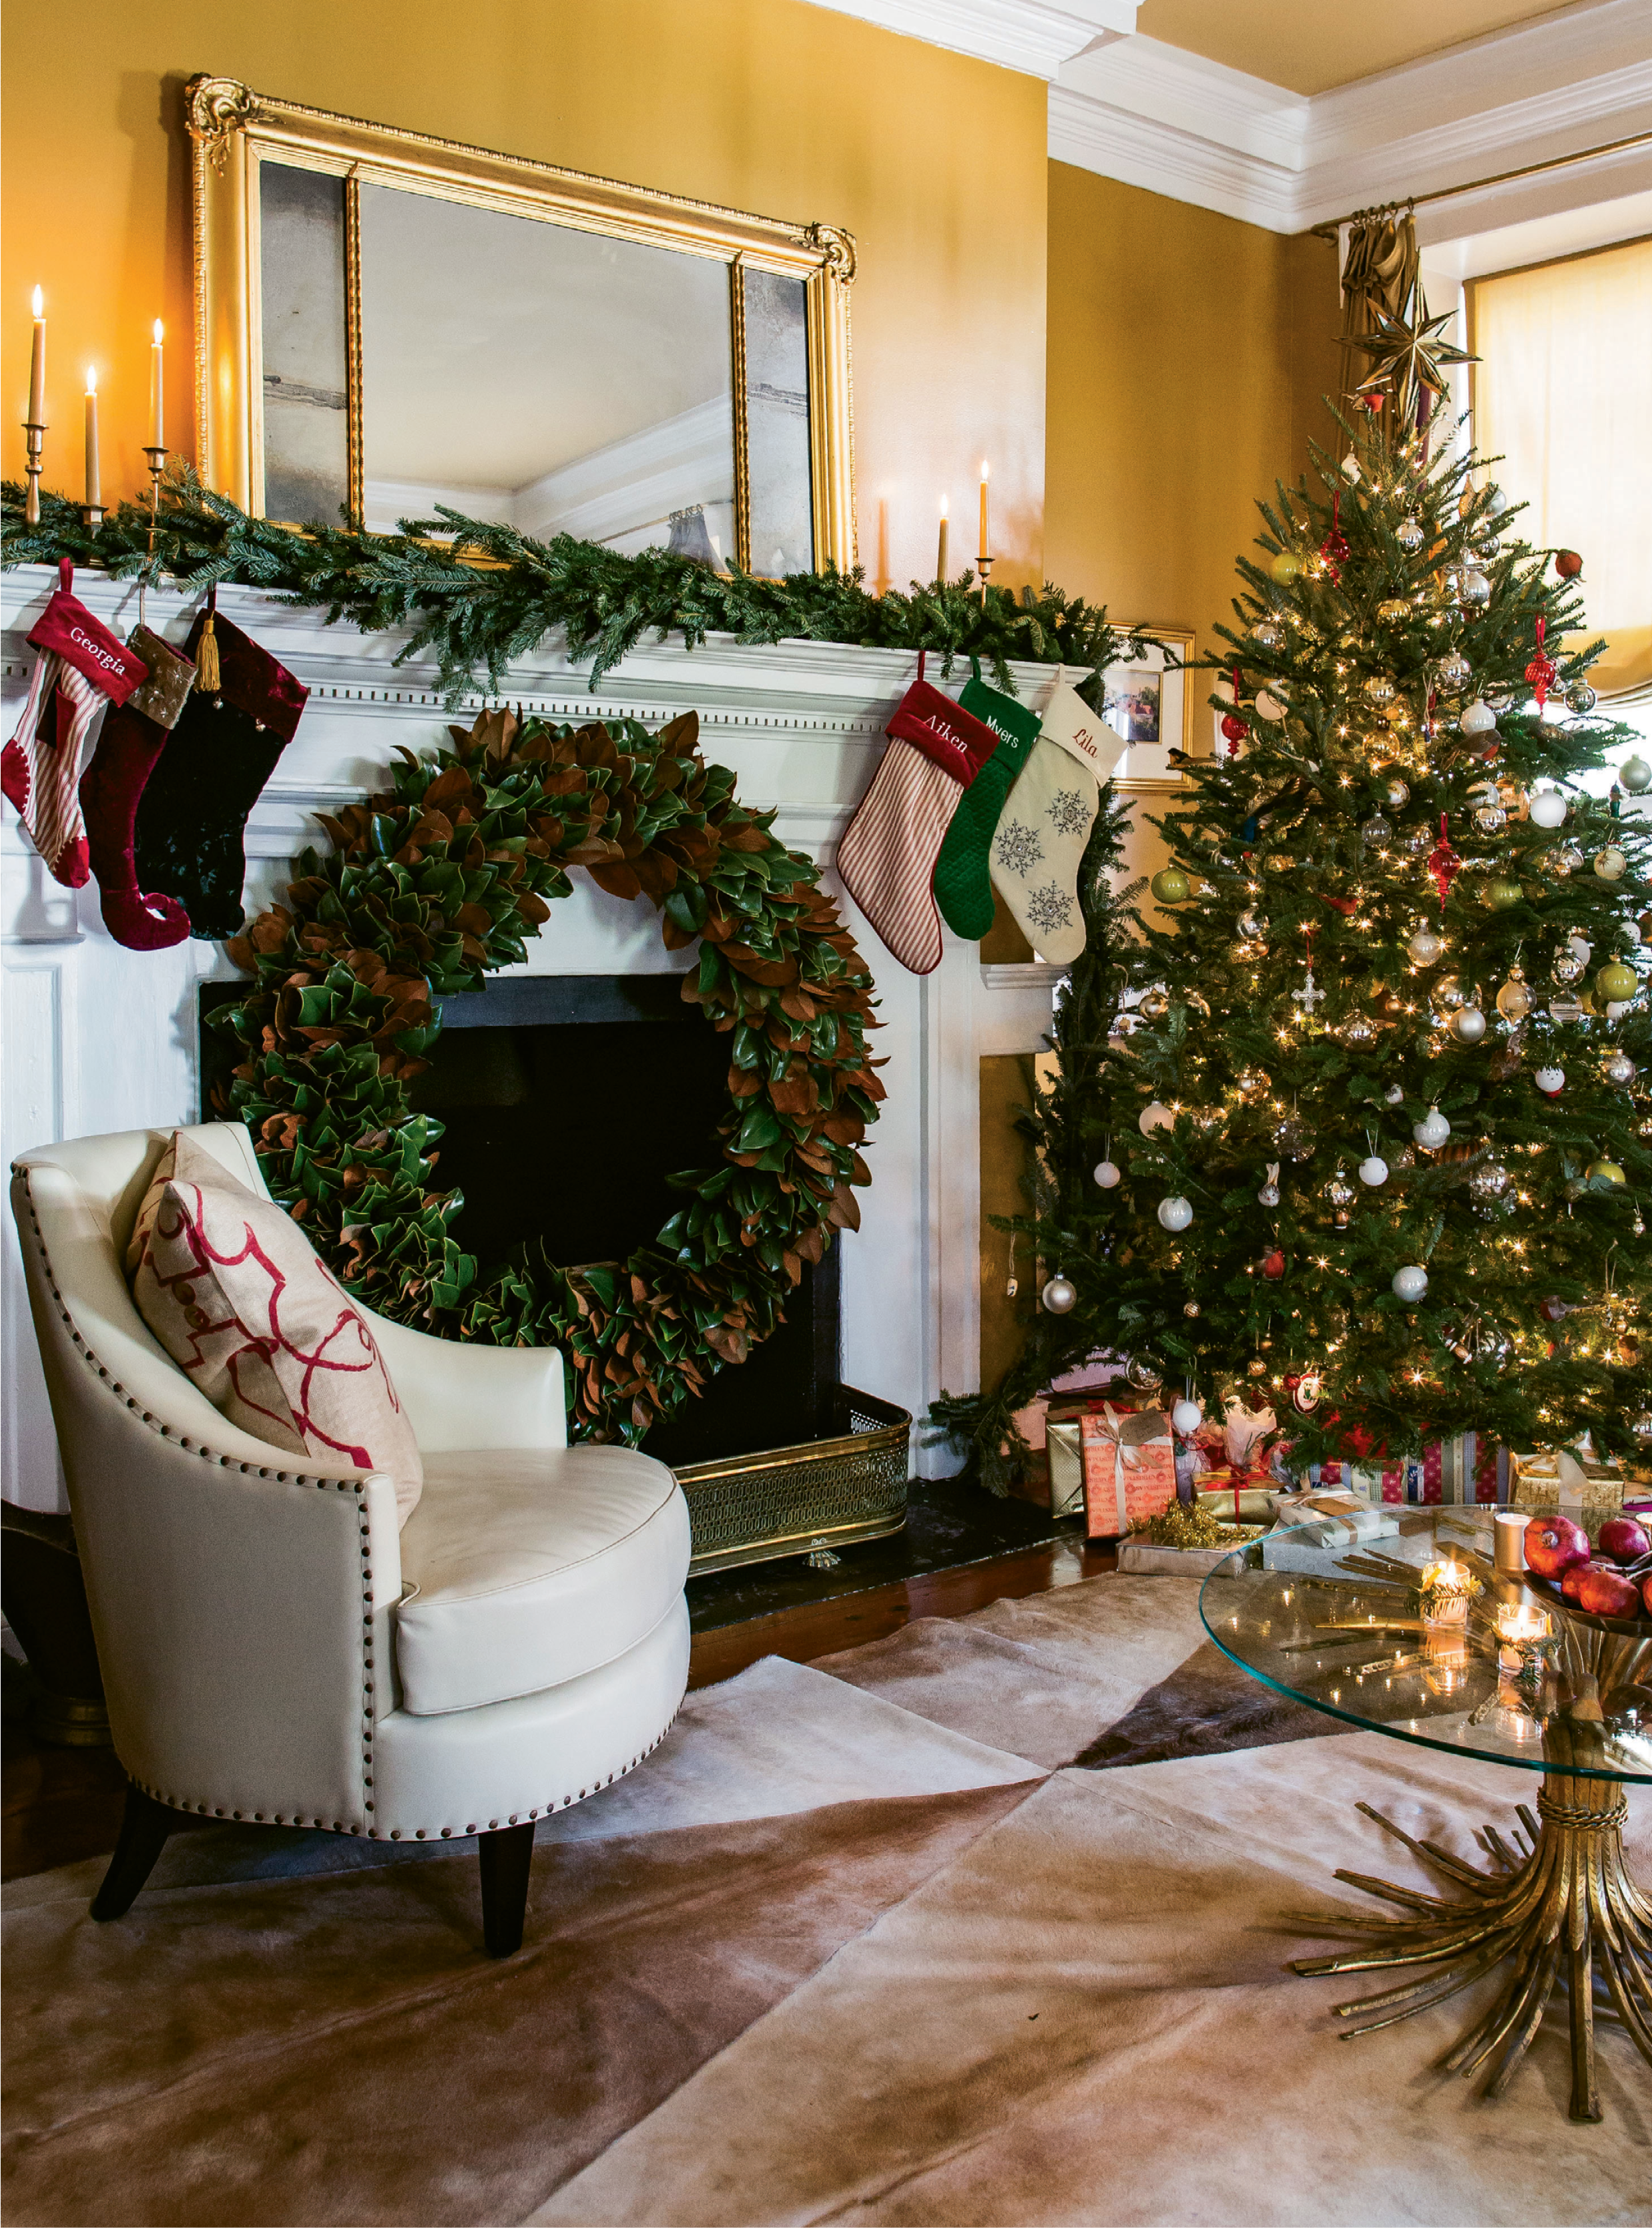 """LIGHT IT UP: A Christmas tree with lights and presents more than suffices for décor this time of year, says Tara. She added simple metallic balls and her children's homemade ornaments to the mix. TIP: Tara's go-to for """"thick, gorgeous foil wrapping paper"""" is T.J. Maxx."""